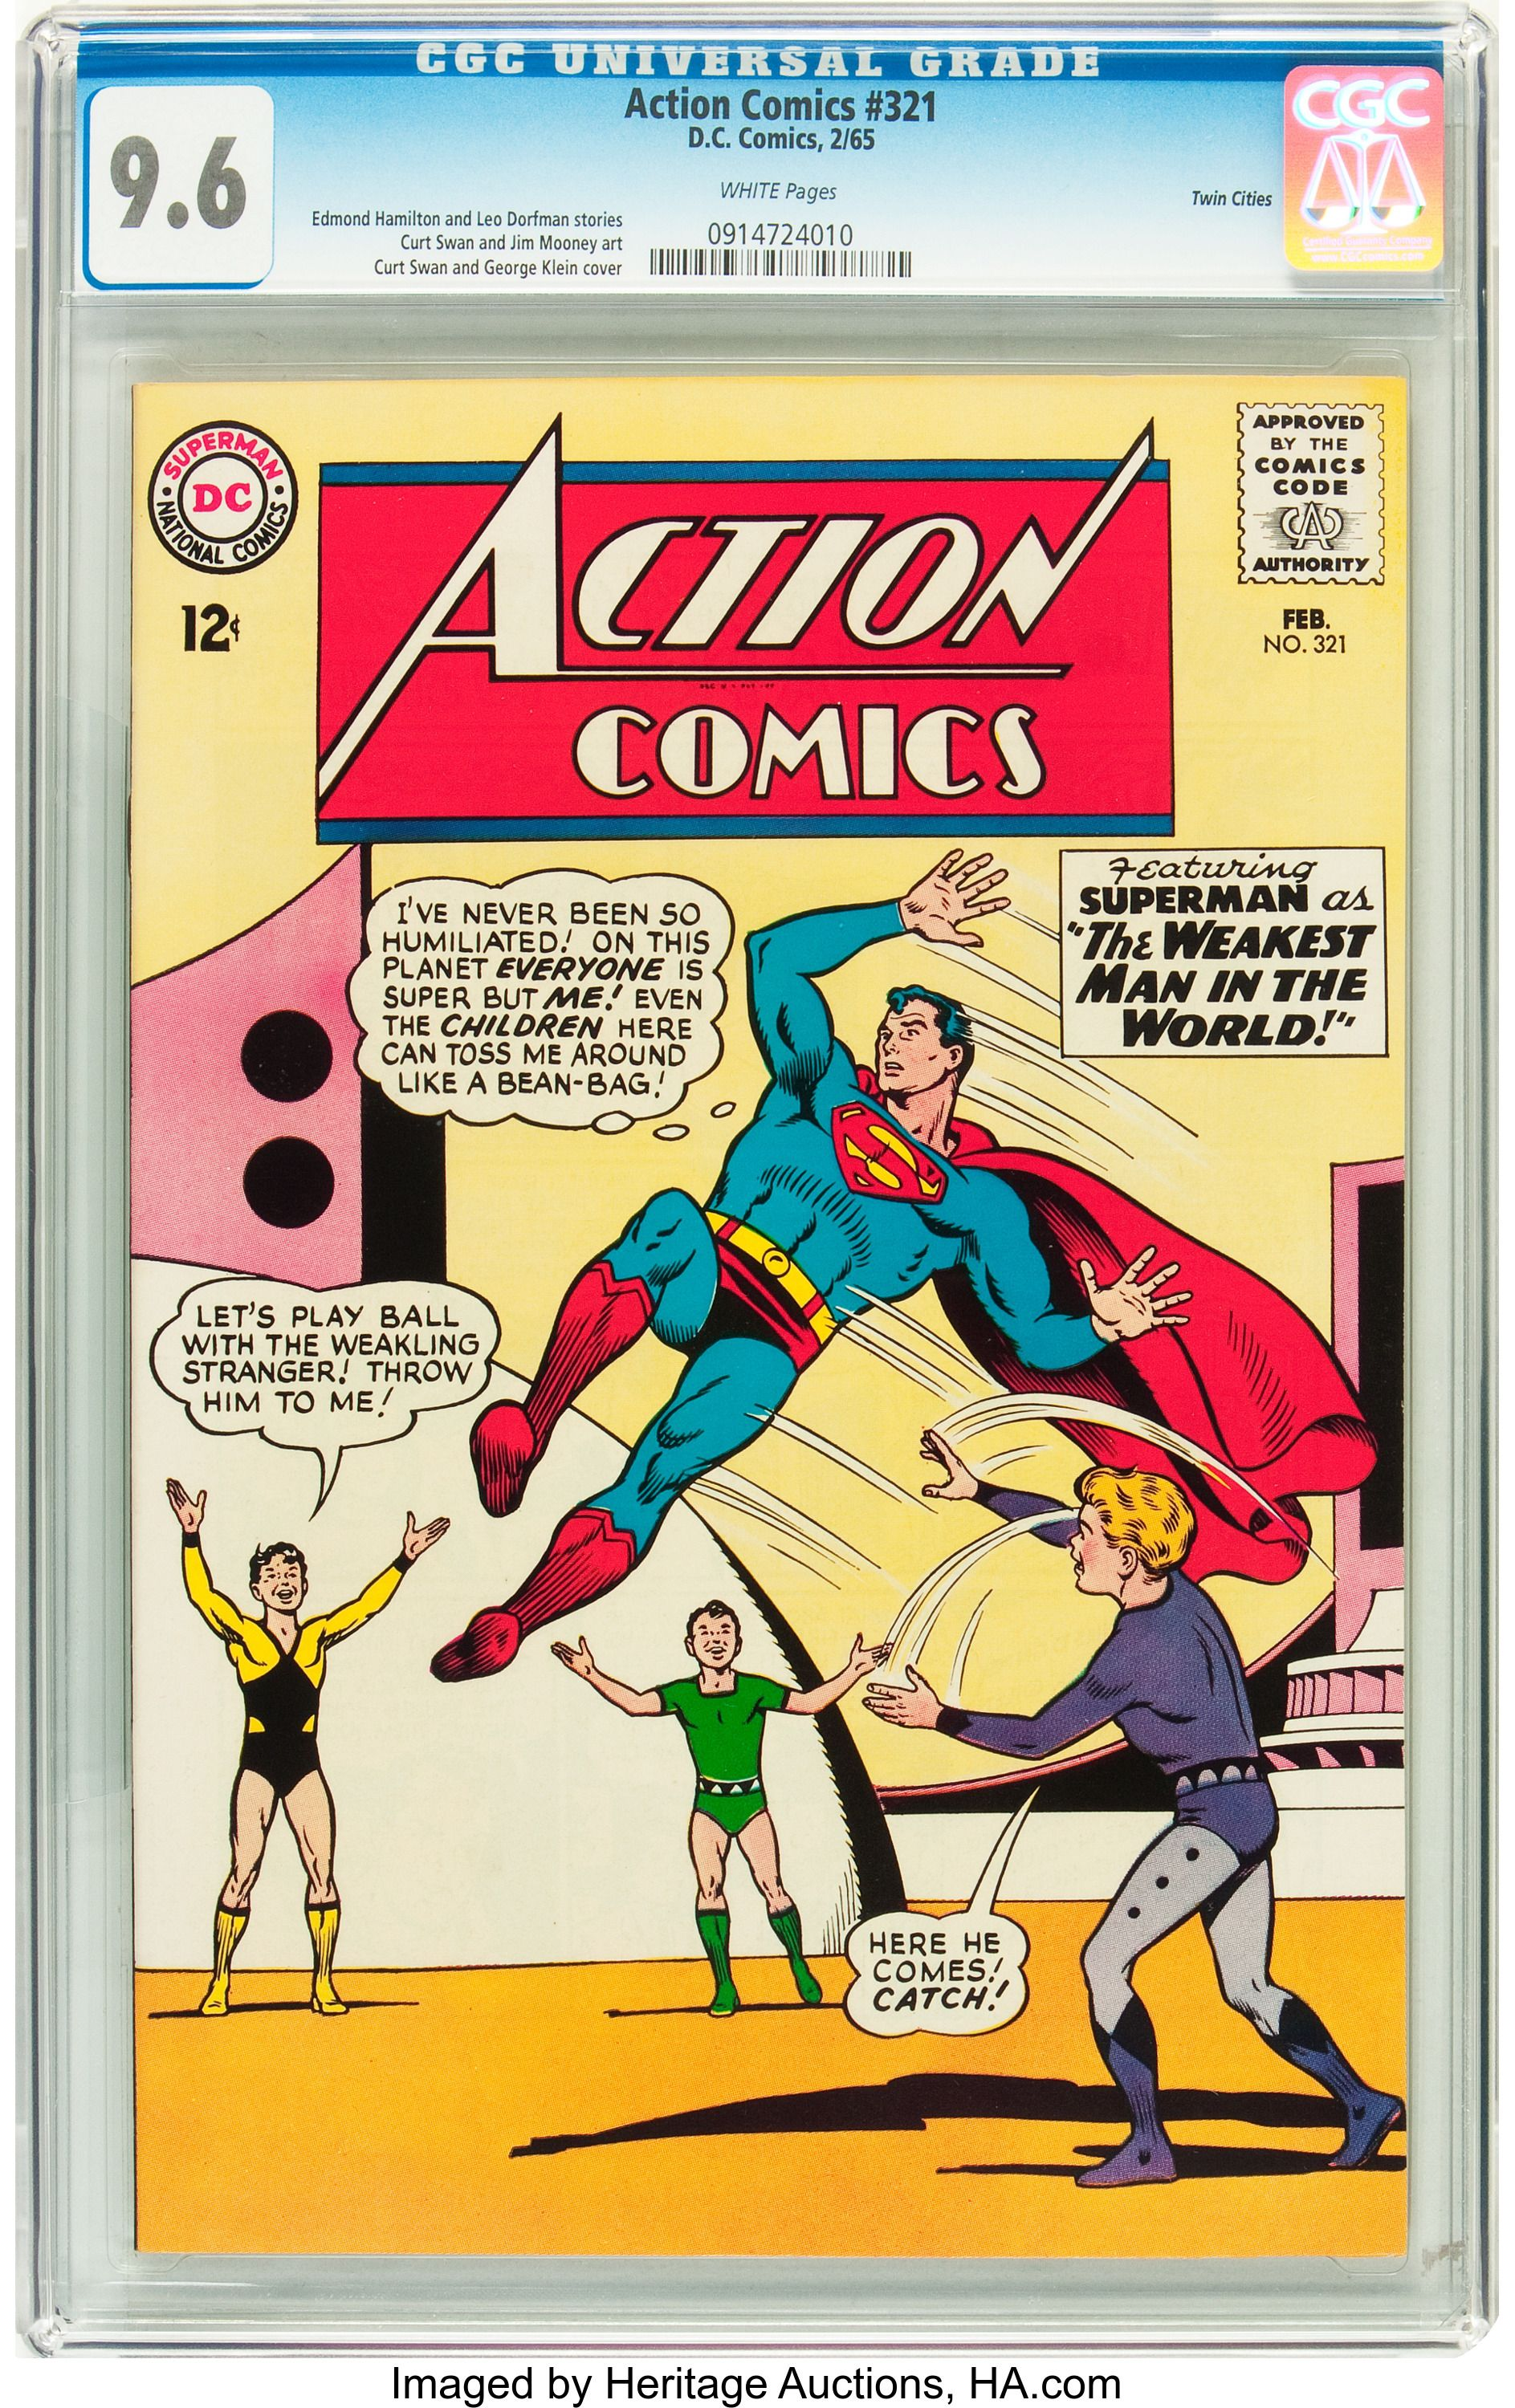 Rare Superman Comic Book Saves Family from Foreclosure